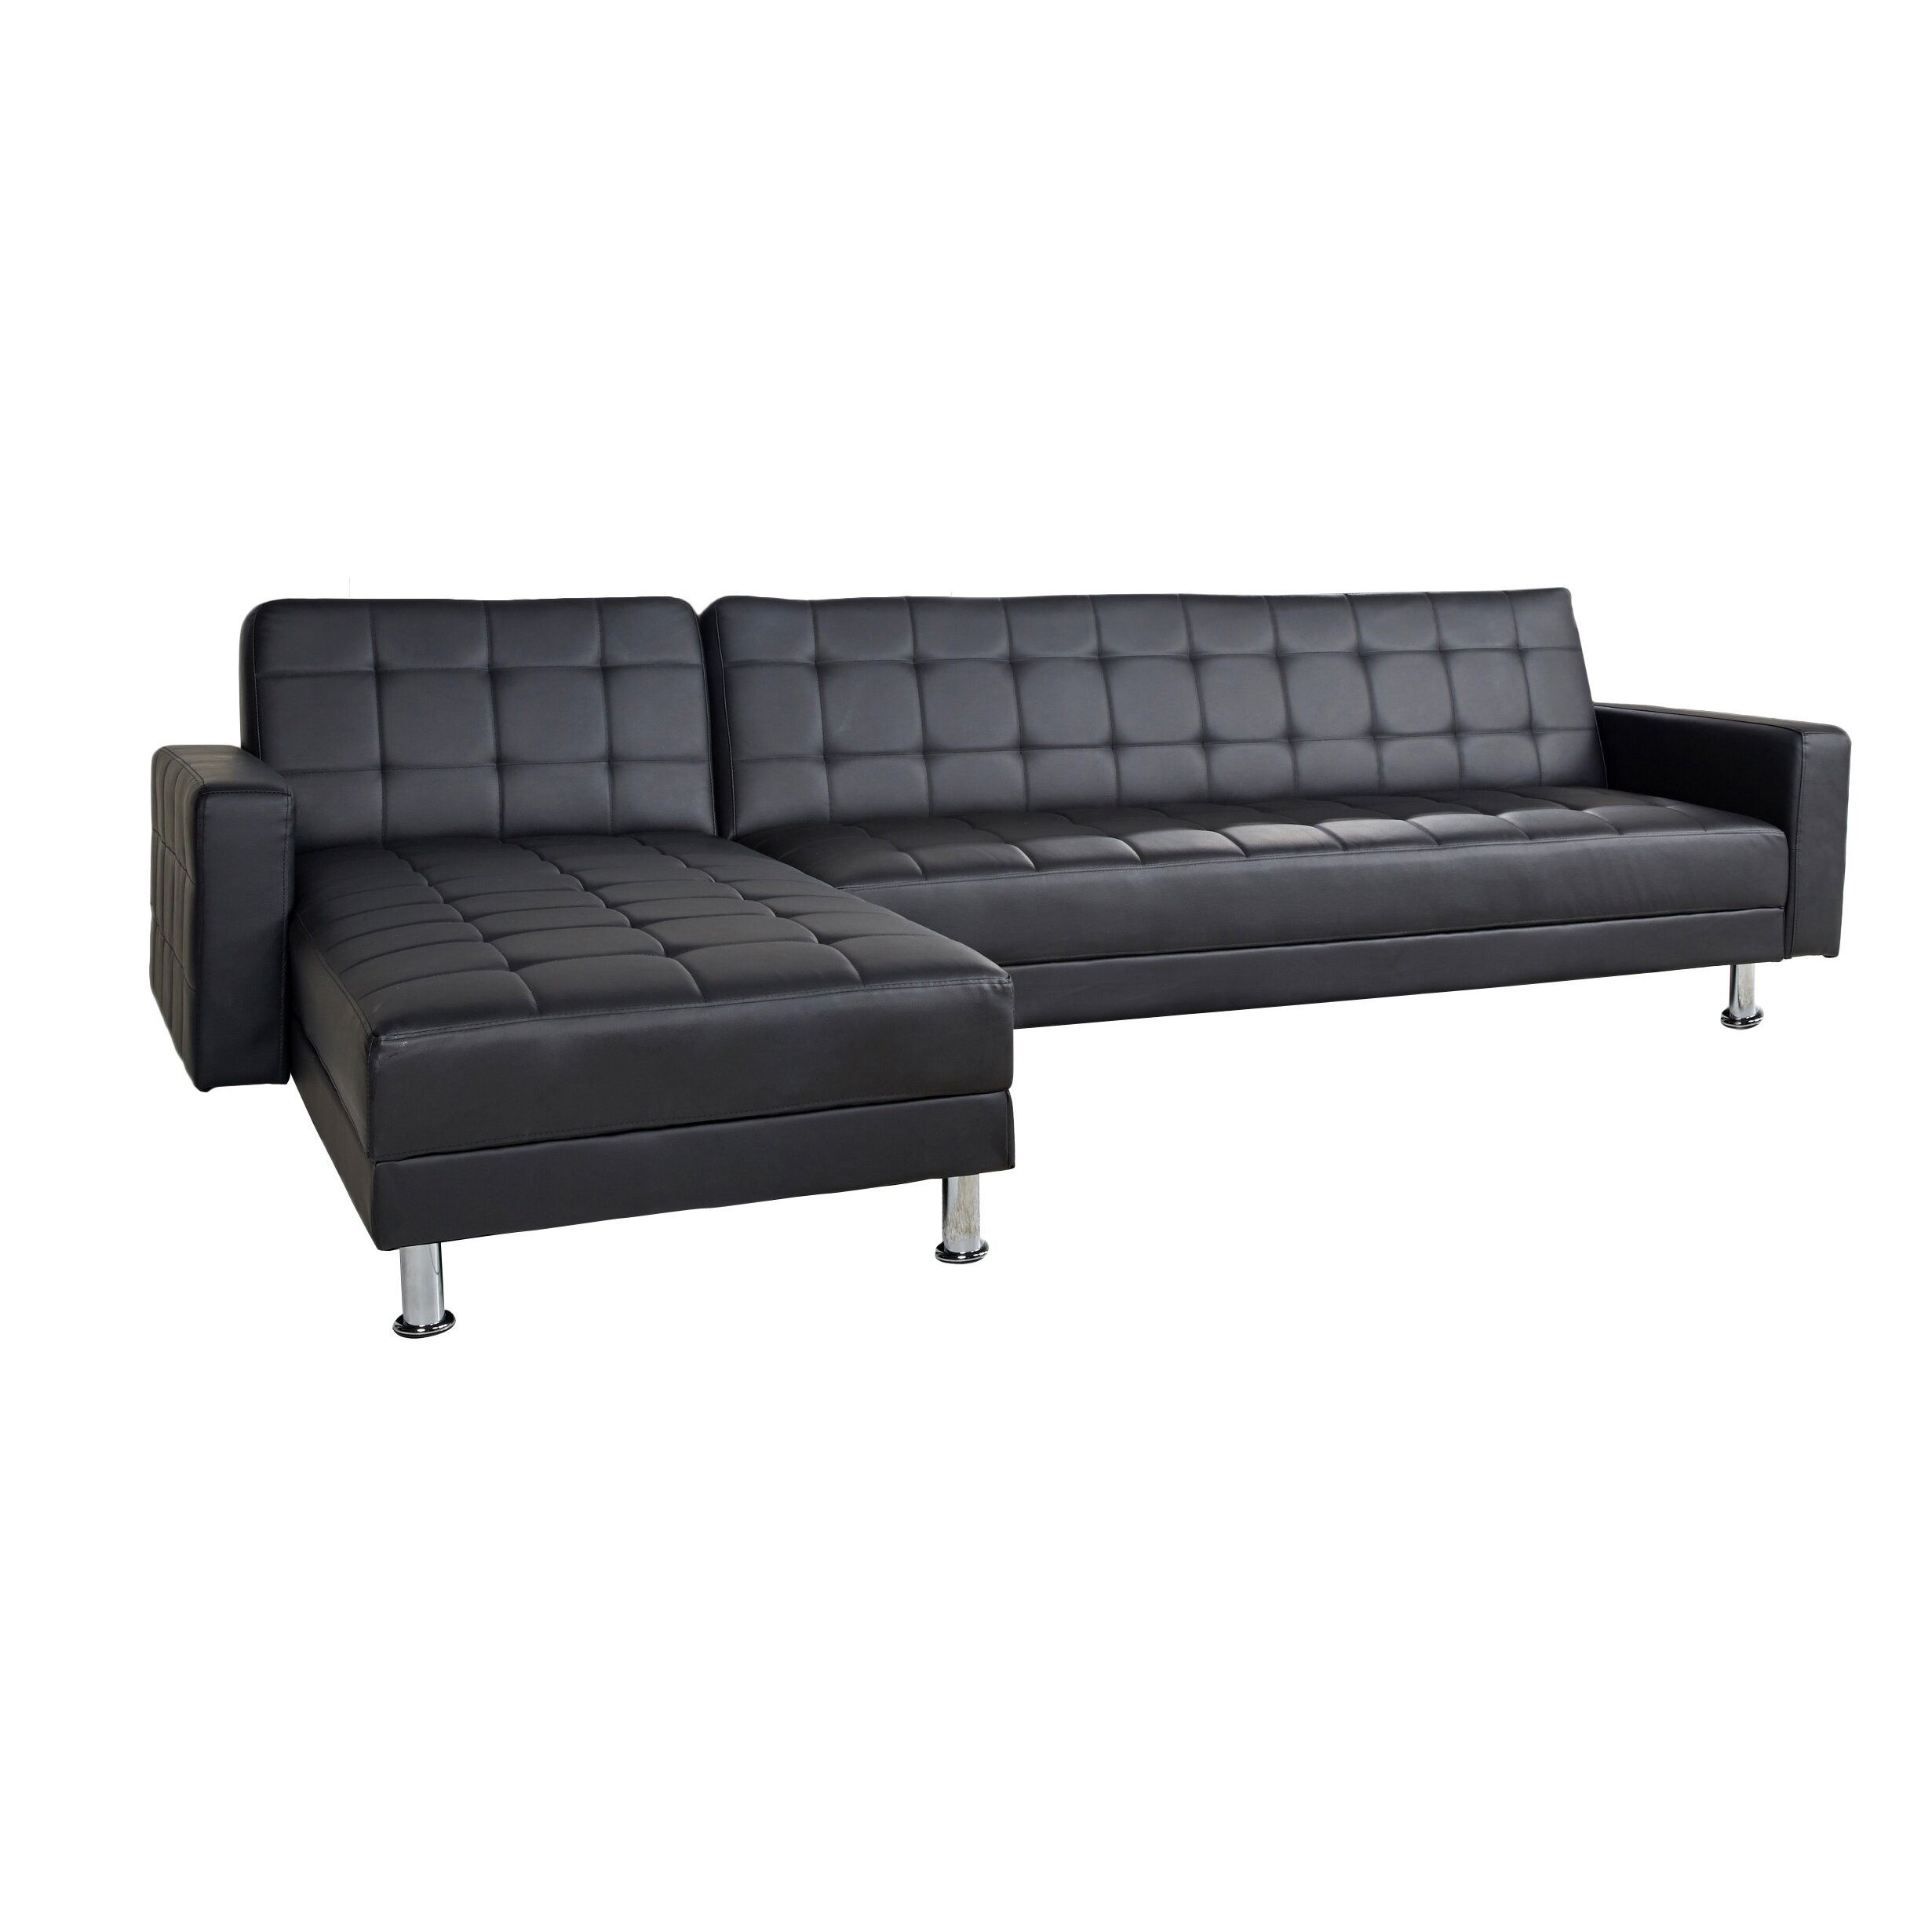 Wade logan spirit lake sleeper sectional reviews wayfair for Chaise lounge convertible bed